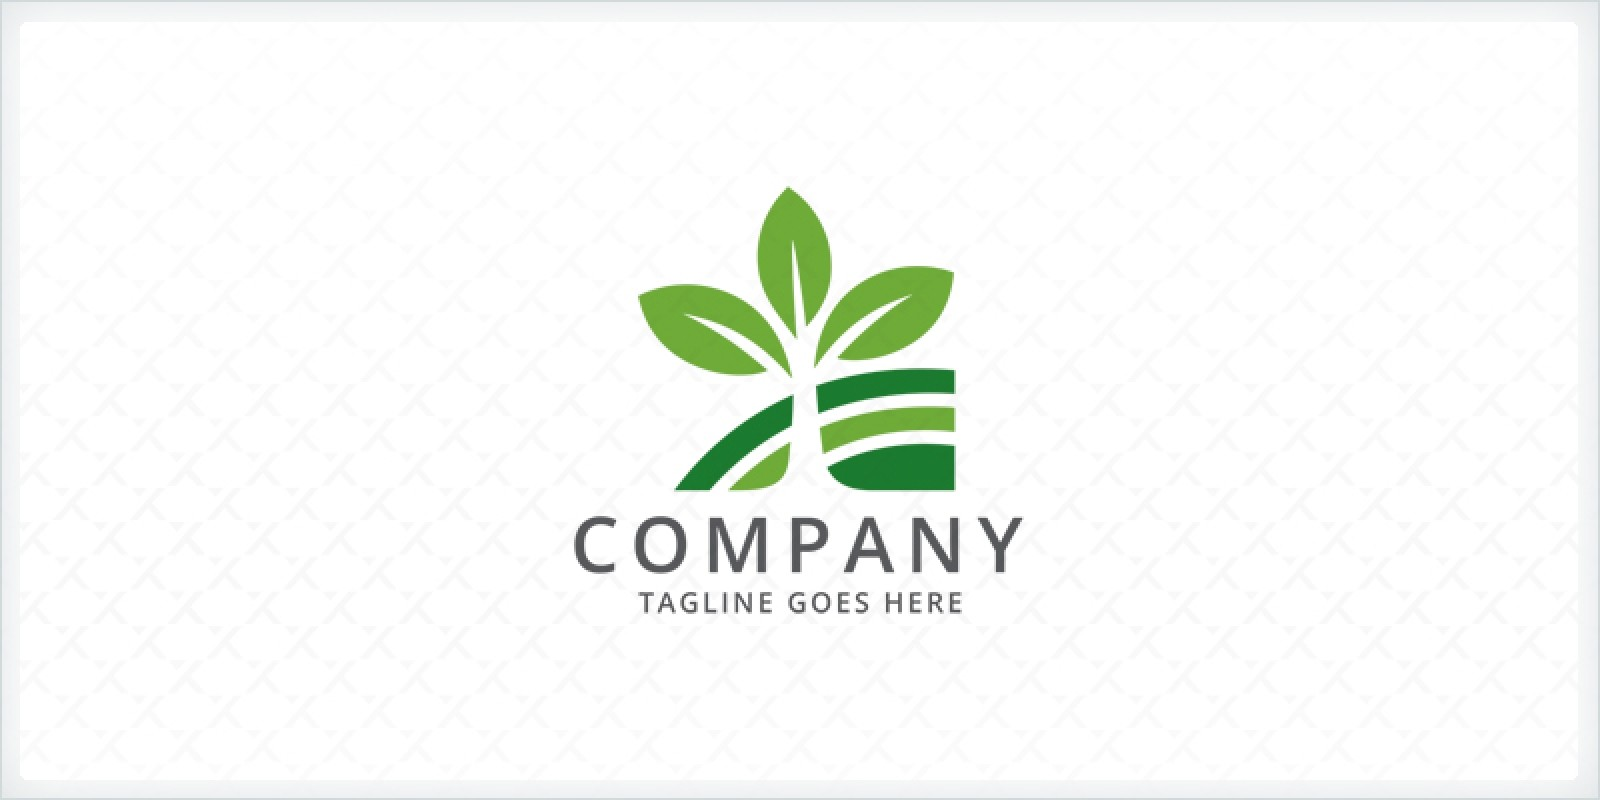 Landscaping - Tree Logo Template